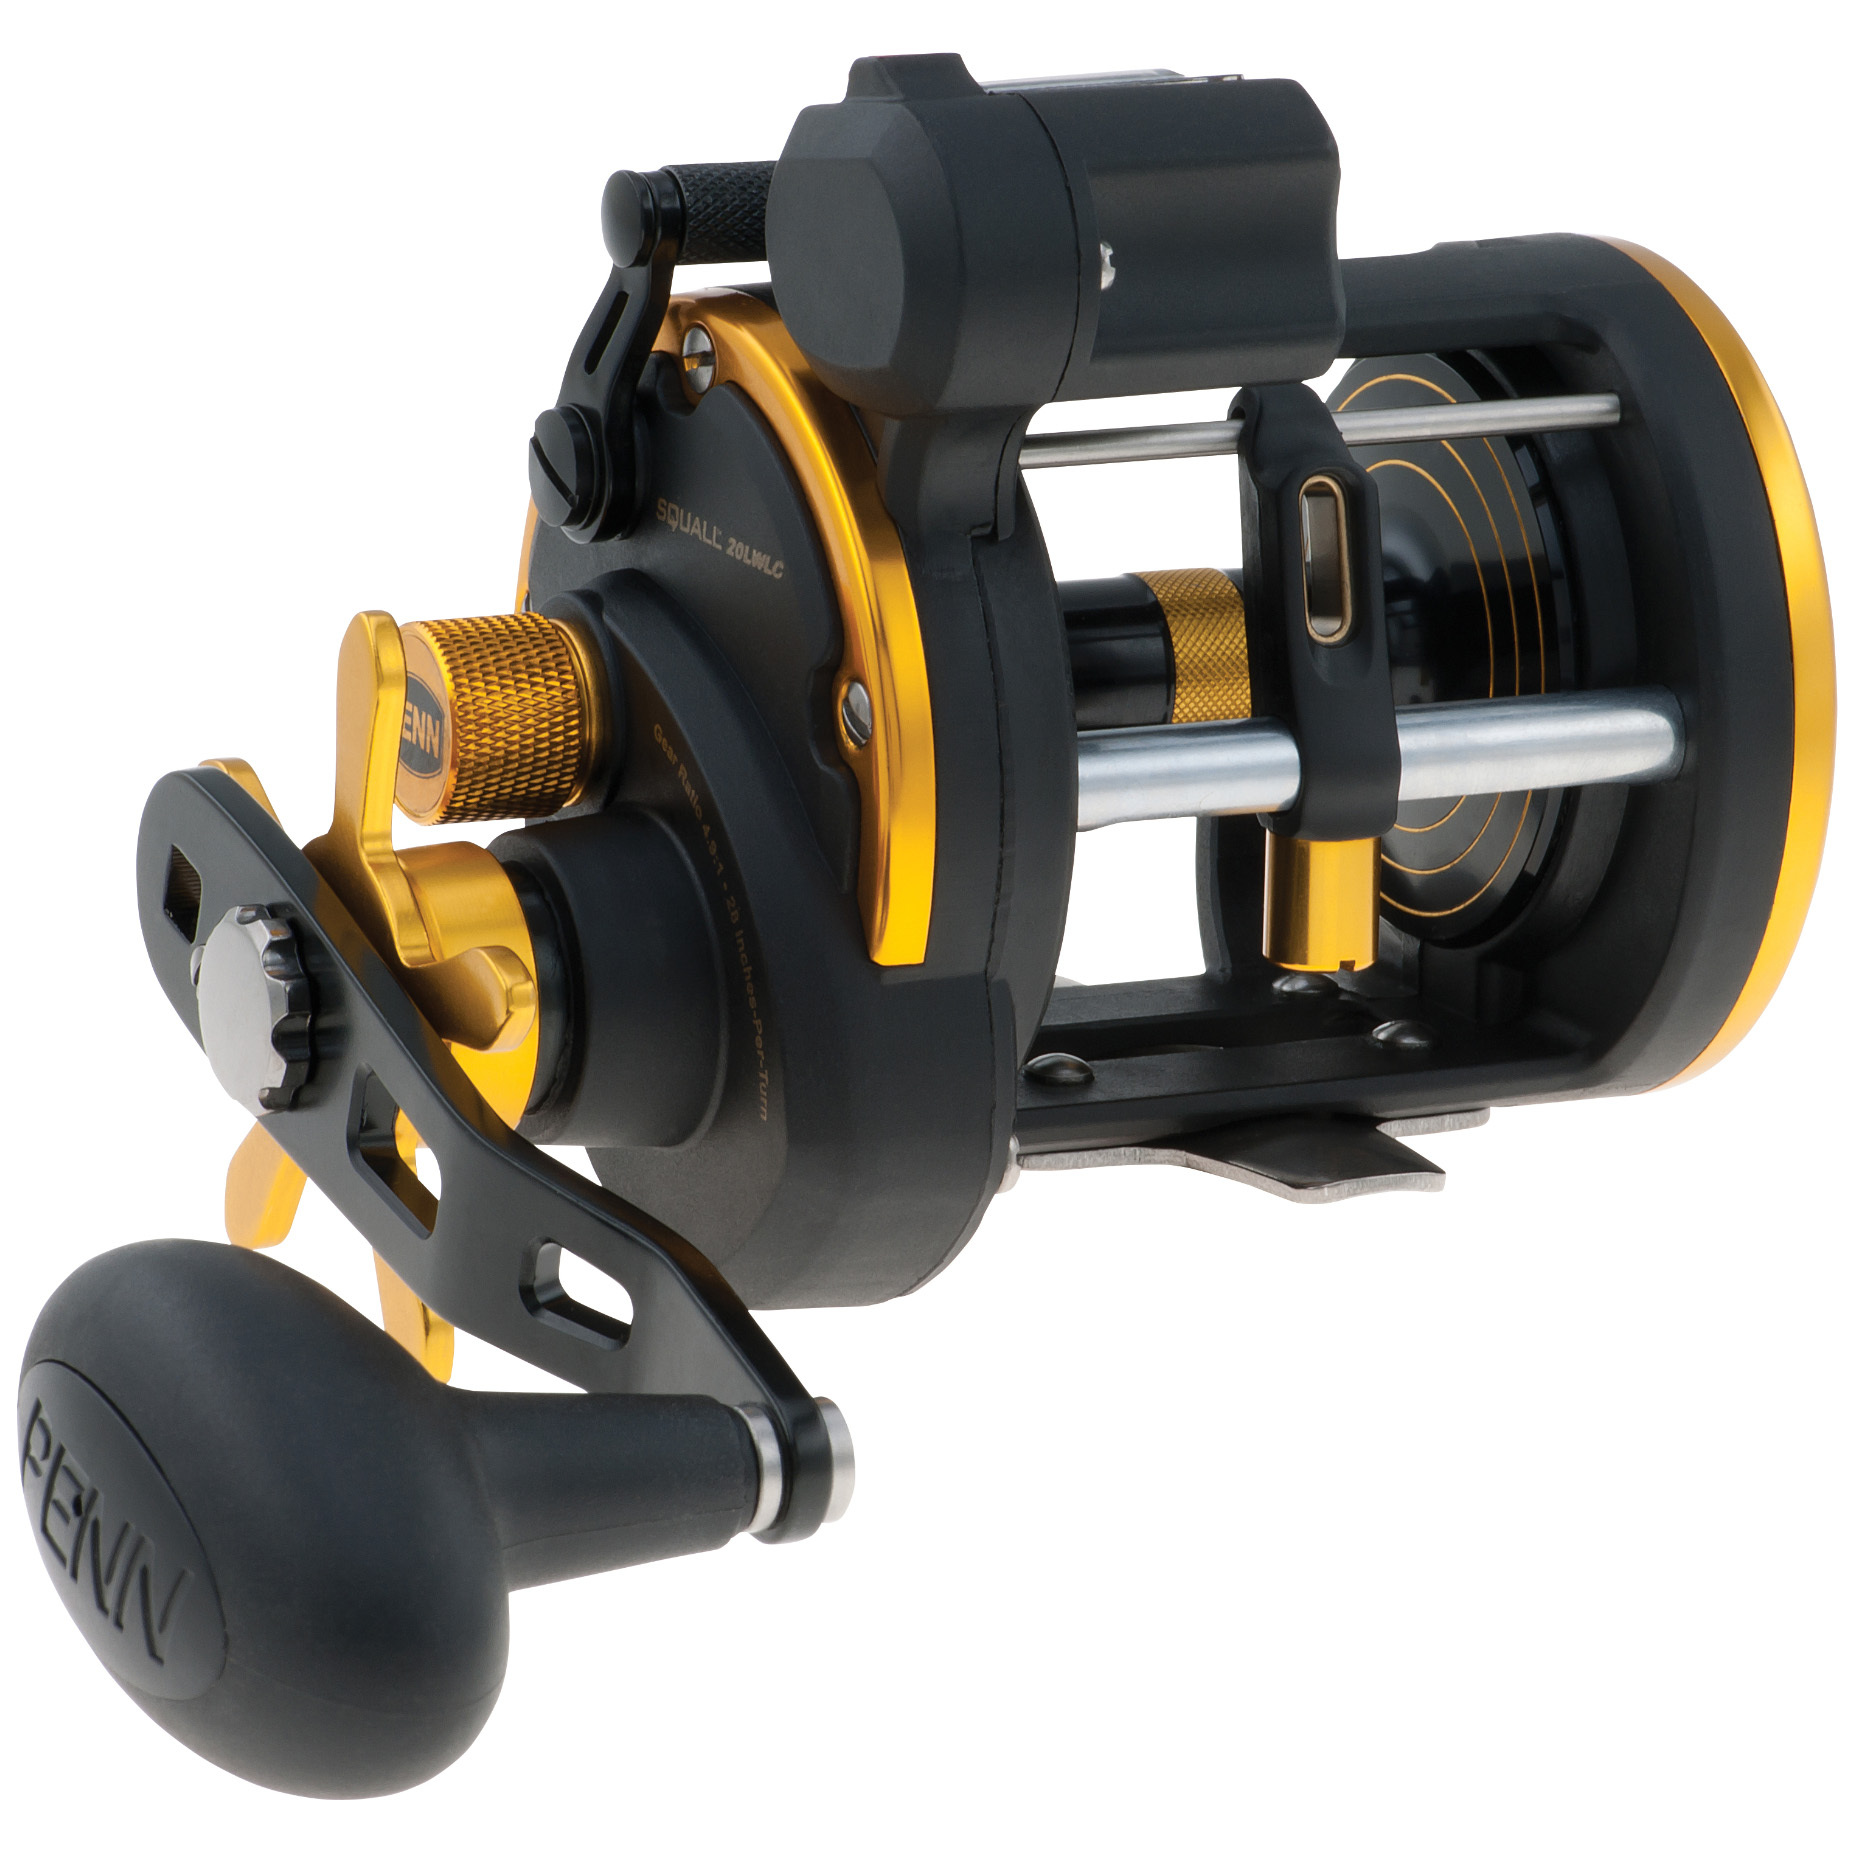 Penn Squall Level Wind Left Handed Baitcasting Reel. Call it a force of nature. The Squall's heavy-duty construction makes it a real workhorse and favorite of charter boat captains and hard-fishing anglers everywhere. It is designed to handle extreme abuse day-in and day-out... so whether you're bottom-fishing or casting live bait, the Squall will stand up to the hardest fishing conditions.The perfect storm:2 ball bearings + 1 roller bearing Line capacity rings eliminate the question of how much line you have left when fighting a fish. The three lines on the spool flange let you know when you have 1/3, 2/3, or a full spool of line Strong-but-light graphite frame and sideplates High-strength, marine-grade bronze alloy main gear Forged and machined aluminum spool Instant anti-reverse bearing with silent back-up ratchet Stainless steel pinion gear 4.9:1 gear ratio Line capacity: 415 yds. / 17 lb., 315 yds. / 20 lb., 290 yds. / 25 lb. Weighs 17 3/4 ozs. - $129.95